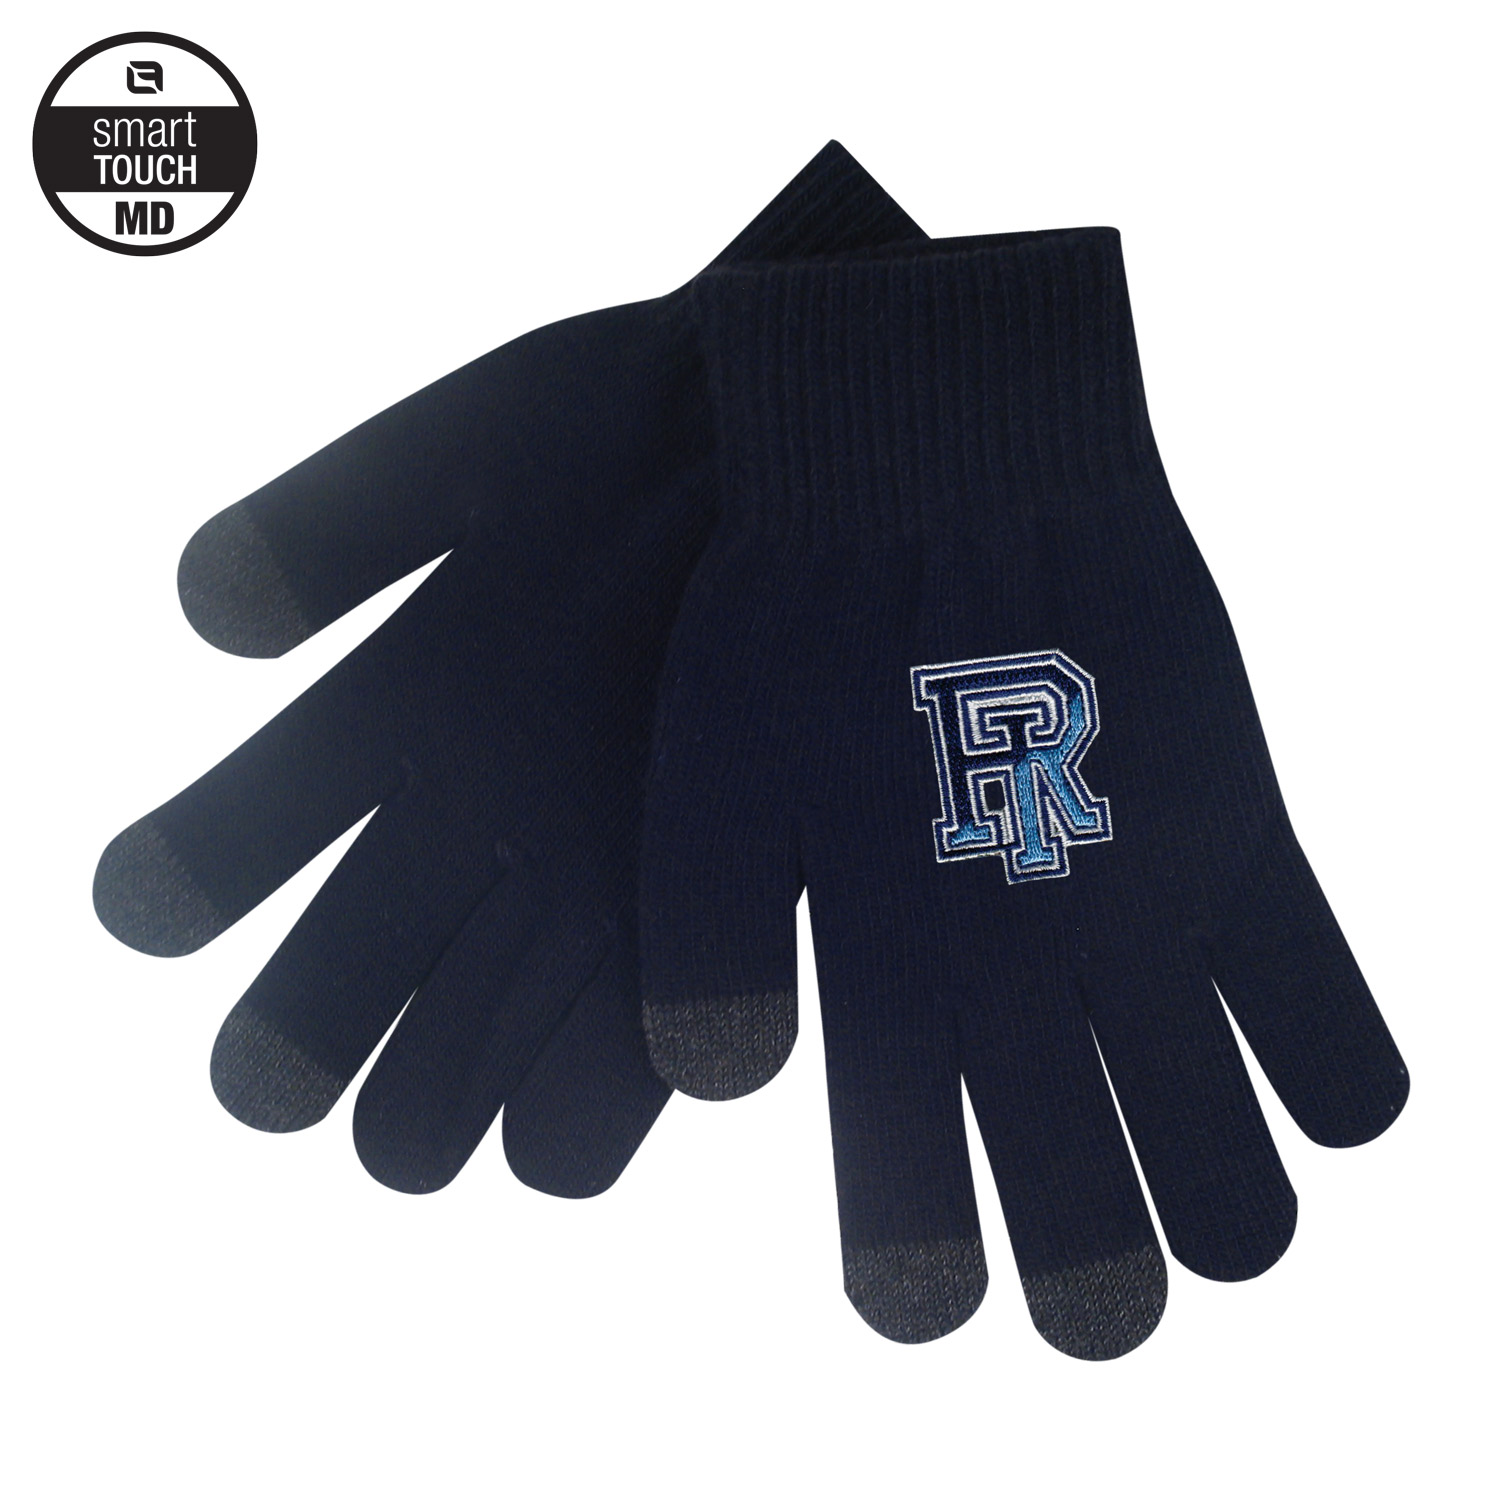 Image For Logofit Smart Touch Medium Knit Gloves